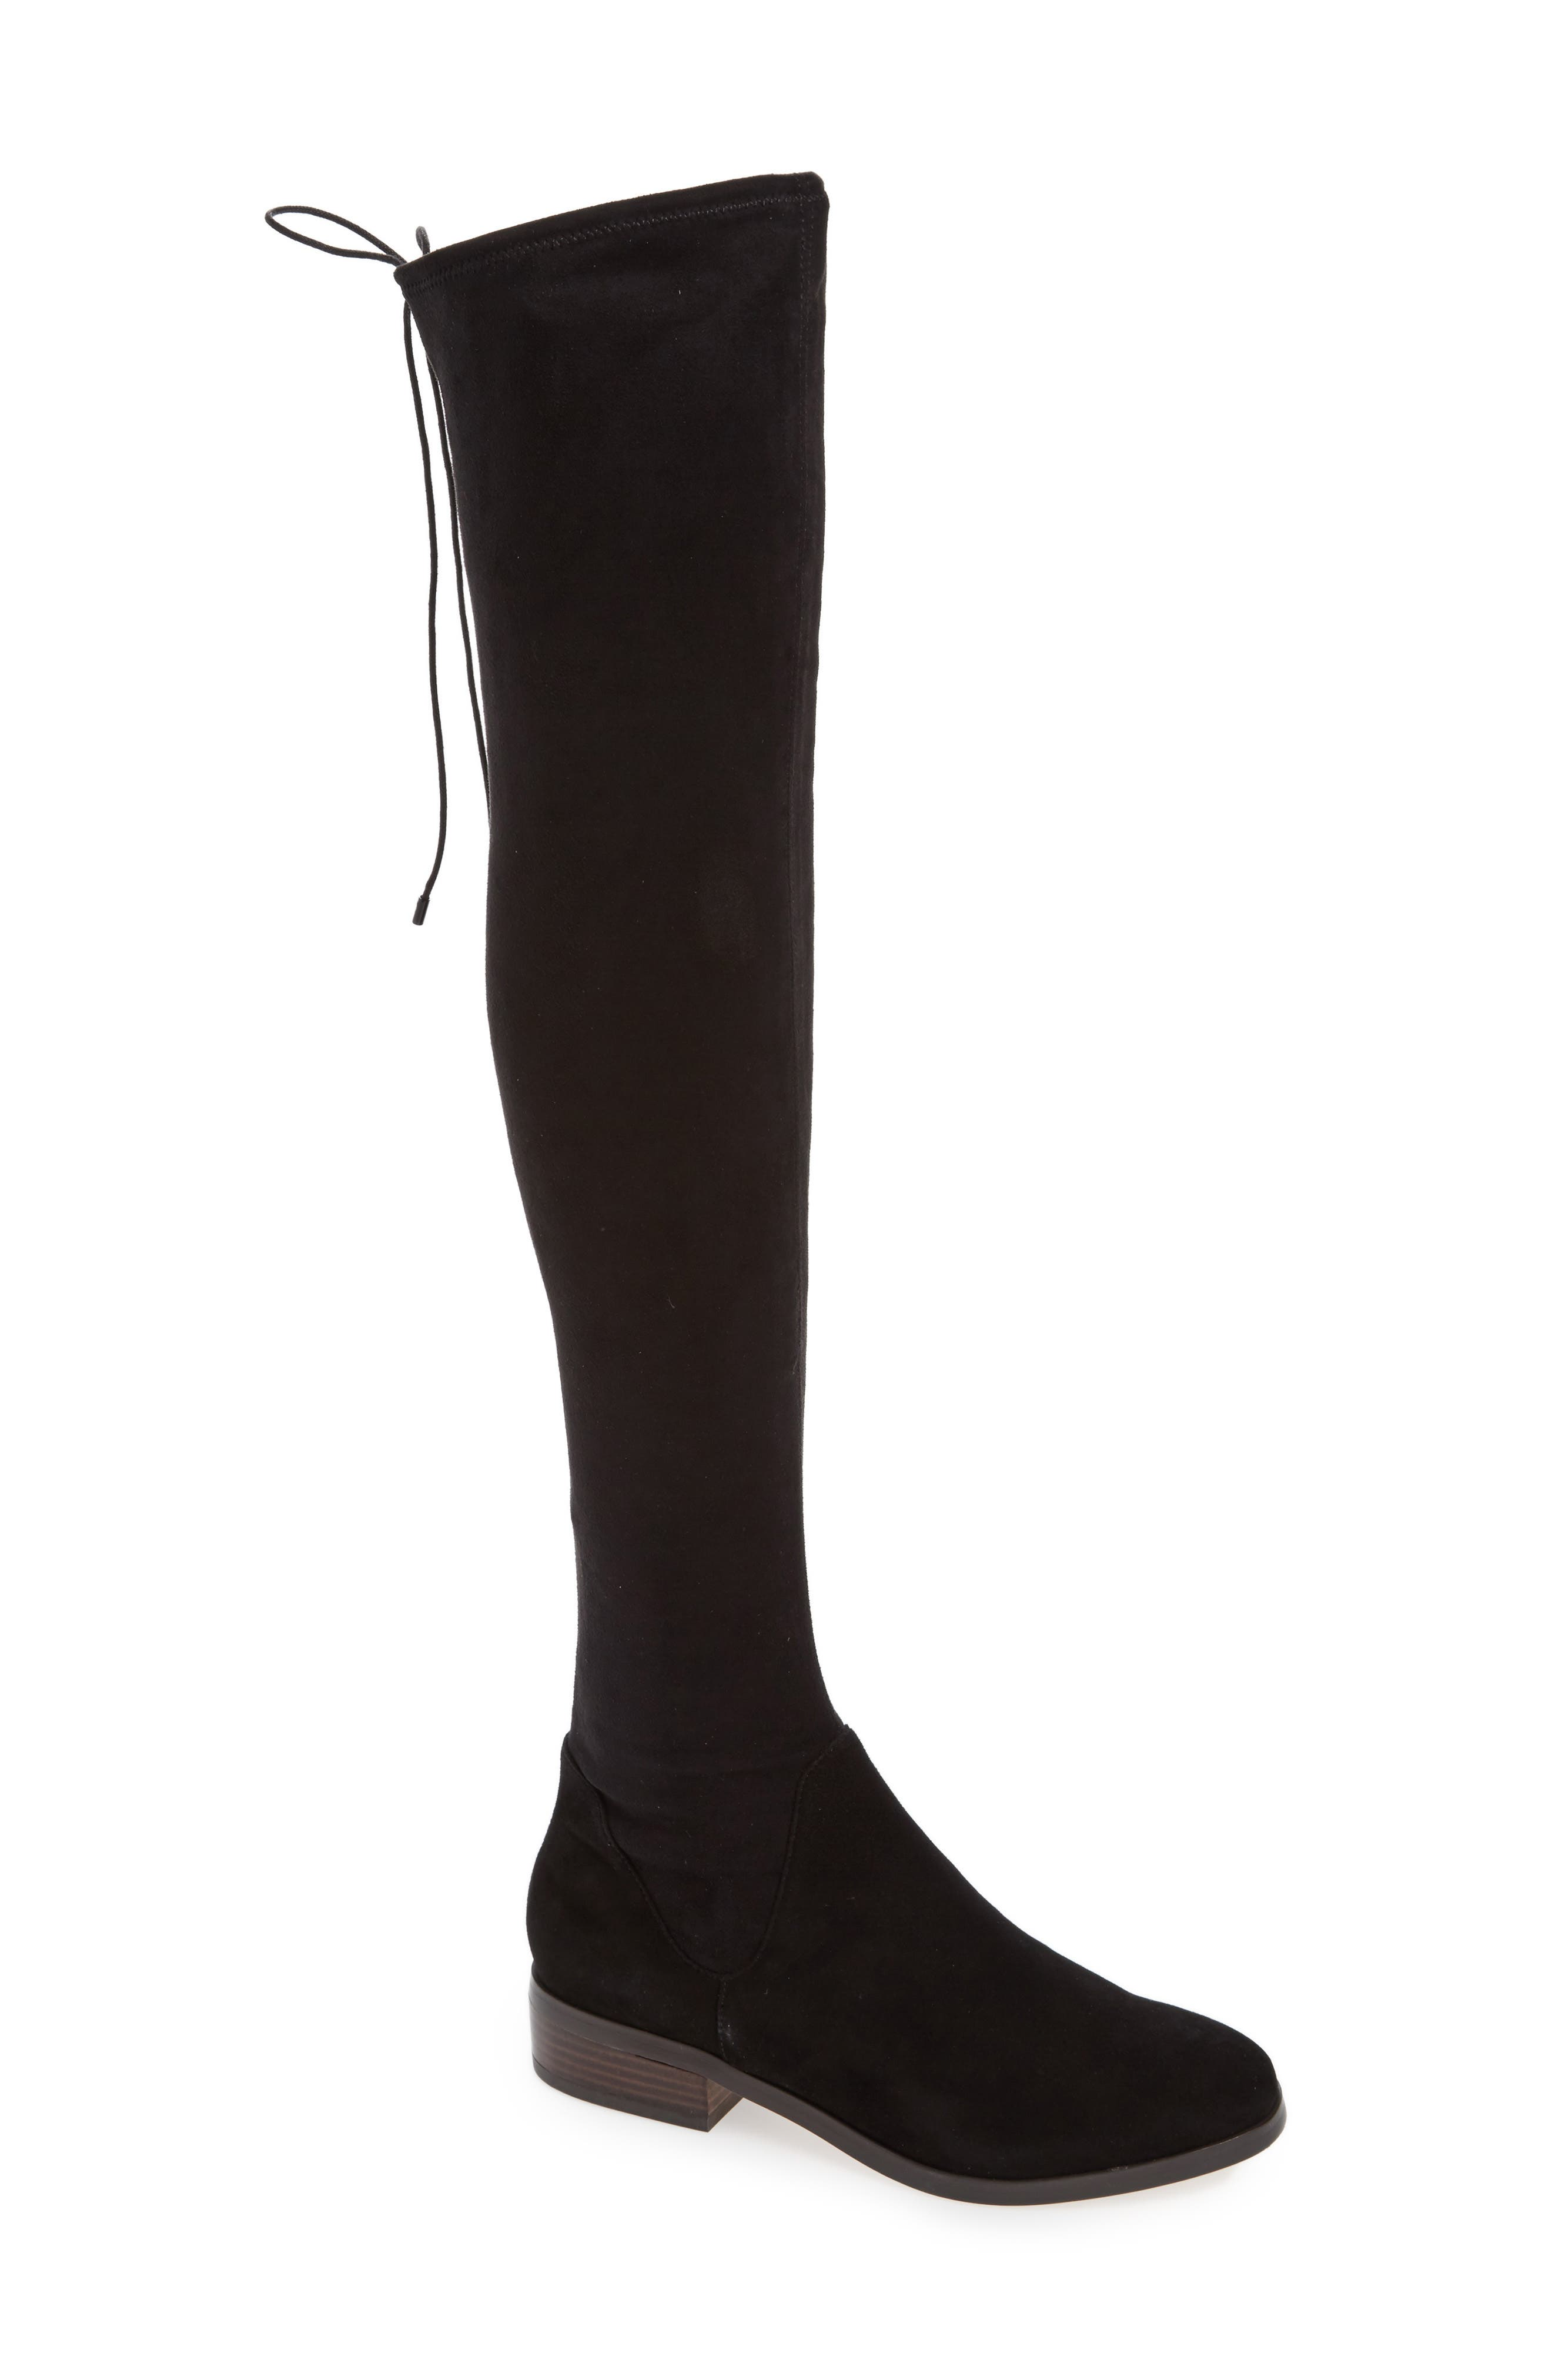 Ravenna Over the Knee Boot,                             Main thumbnail 1, color,                             003